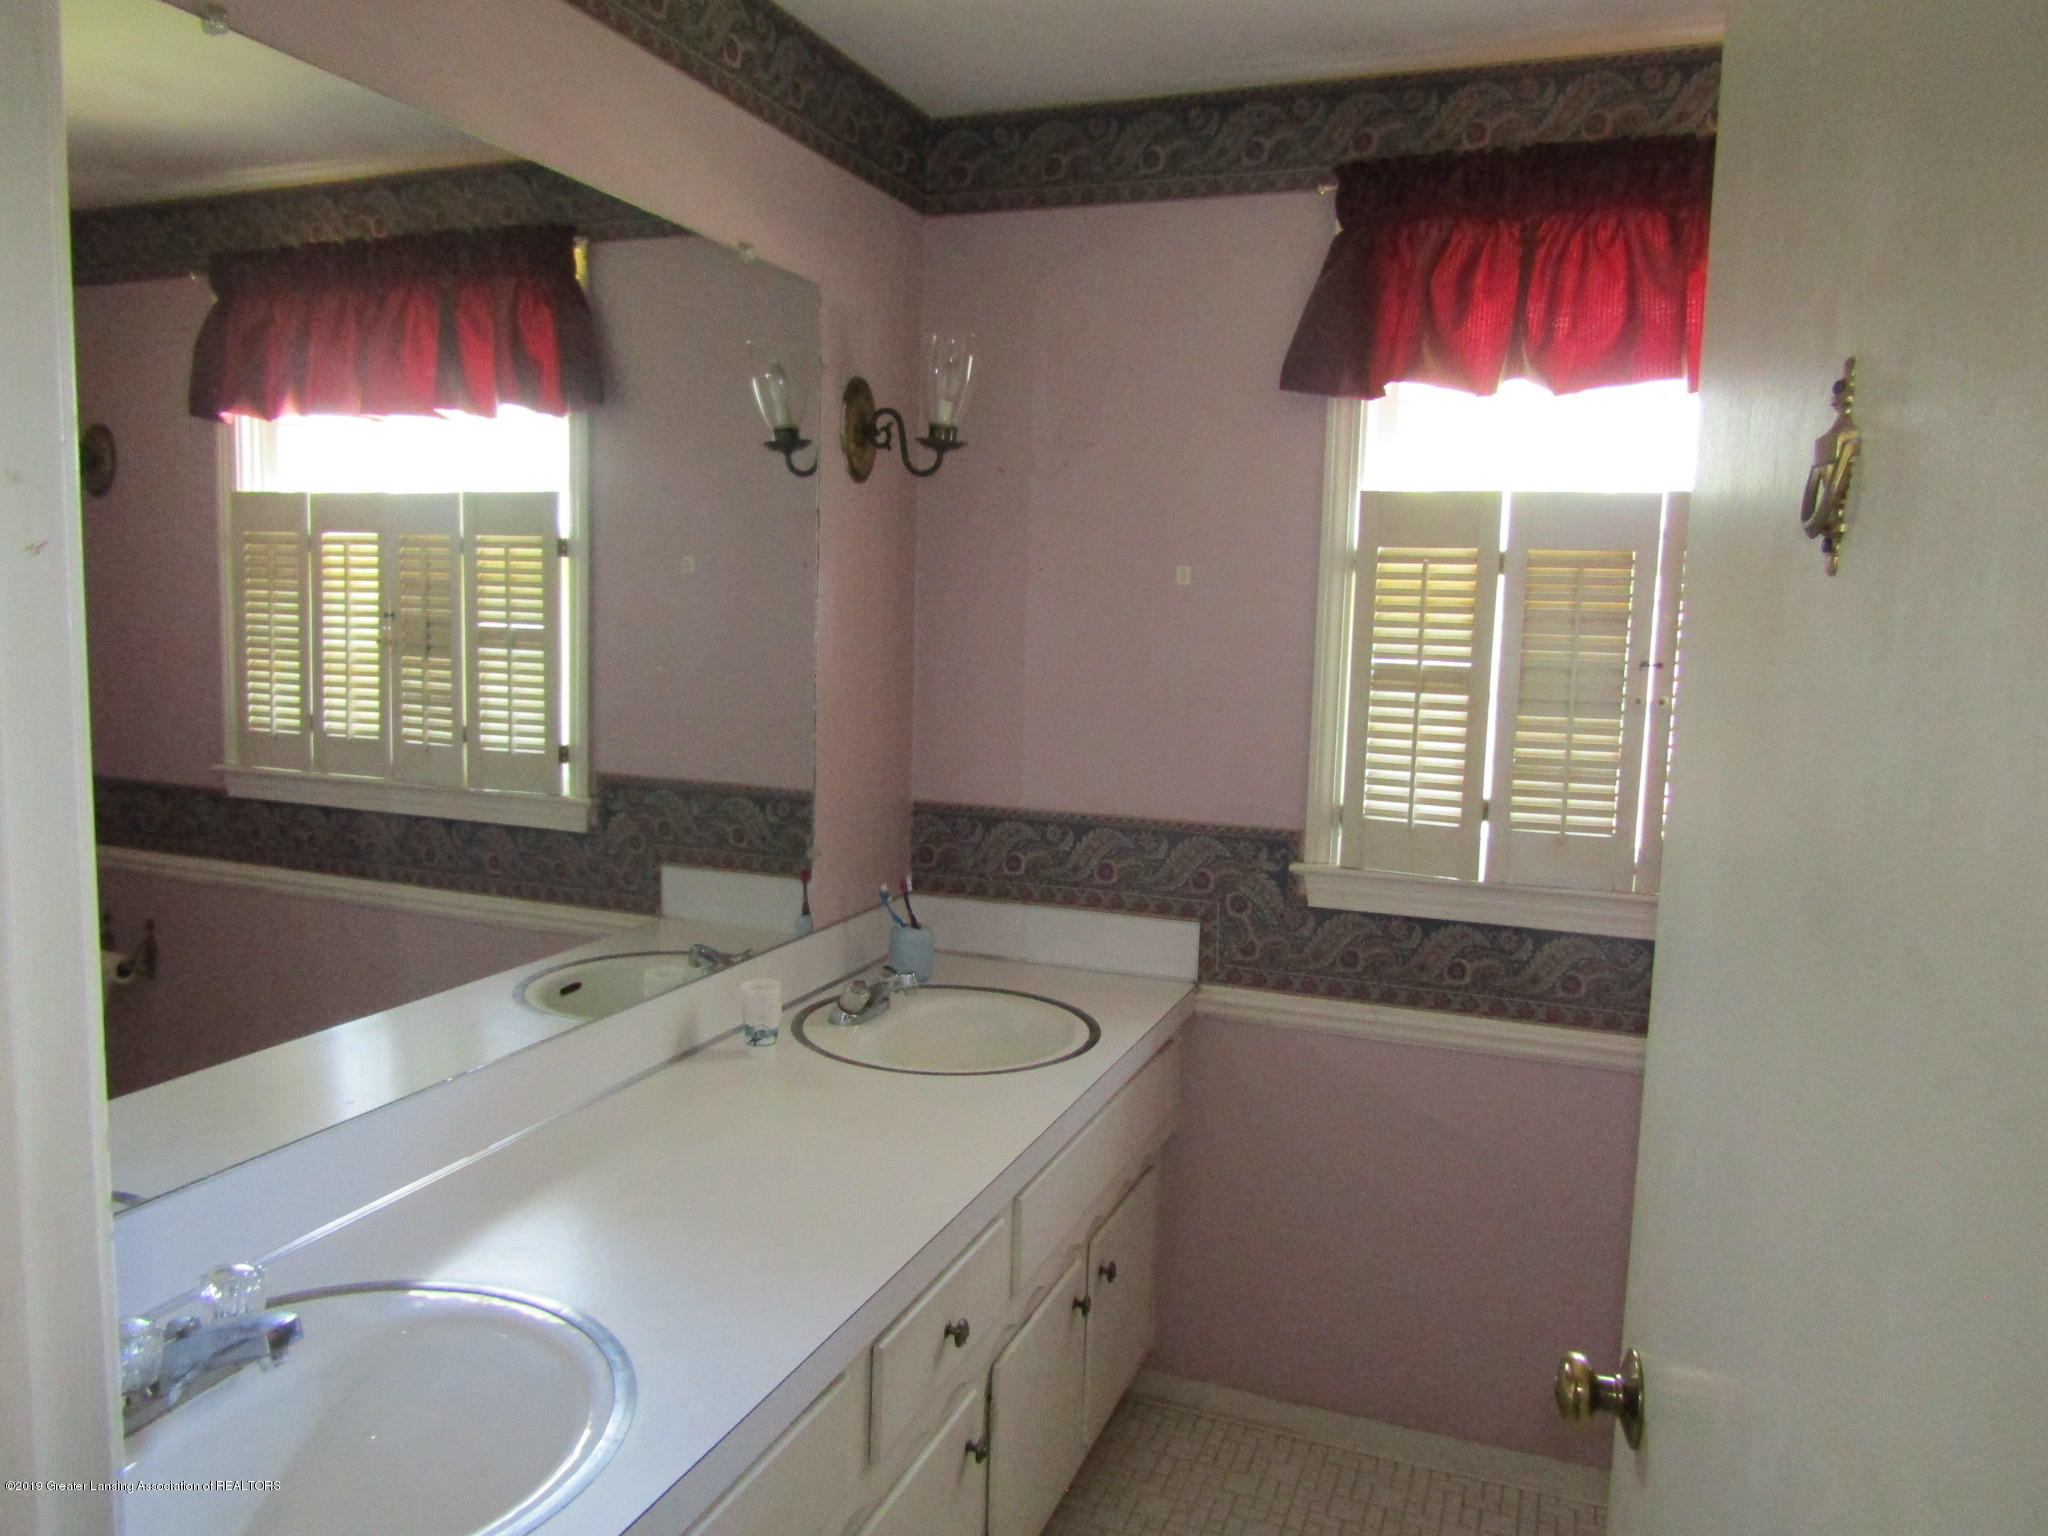 2621 S Waverly Rd - Full bath - 38